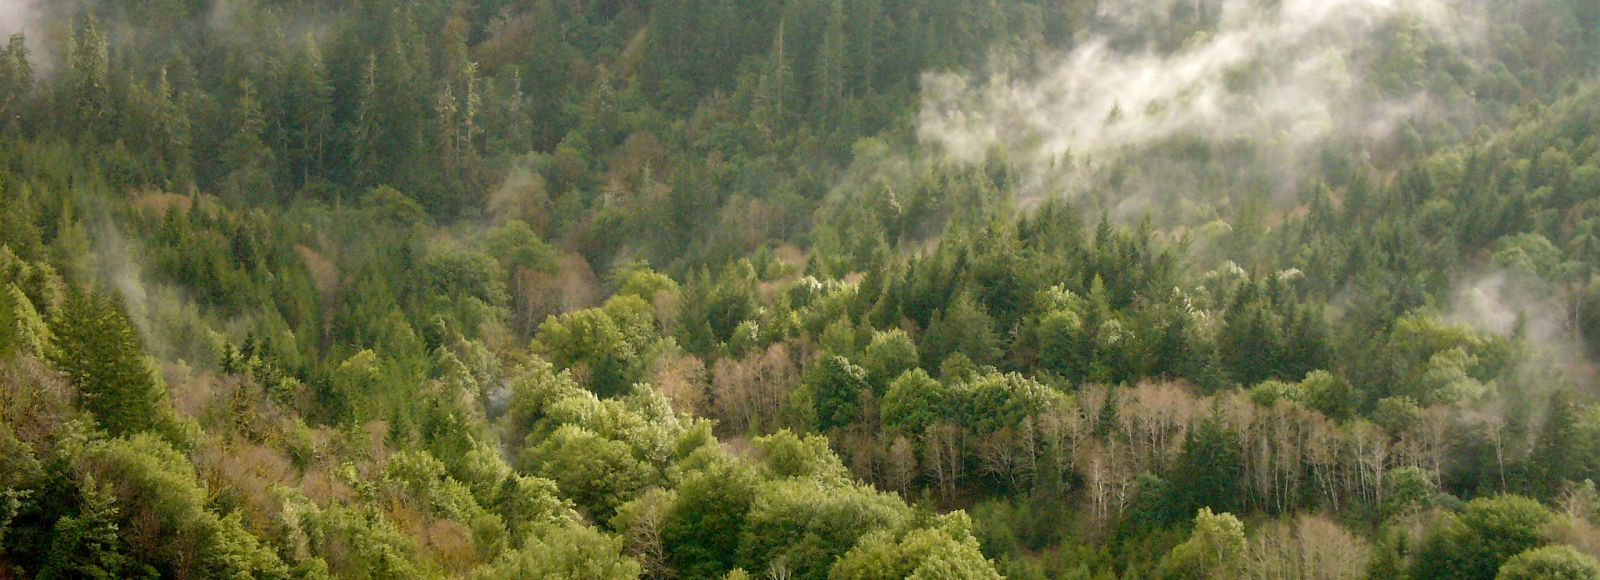 aerial view of a densely forested area with a small creek running through